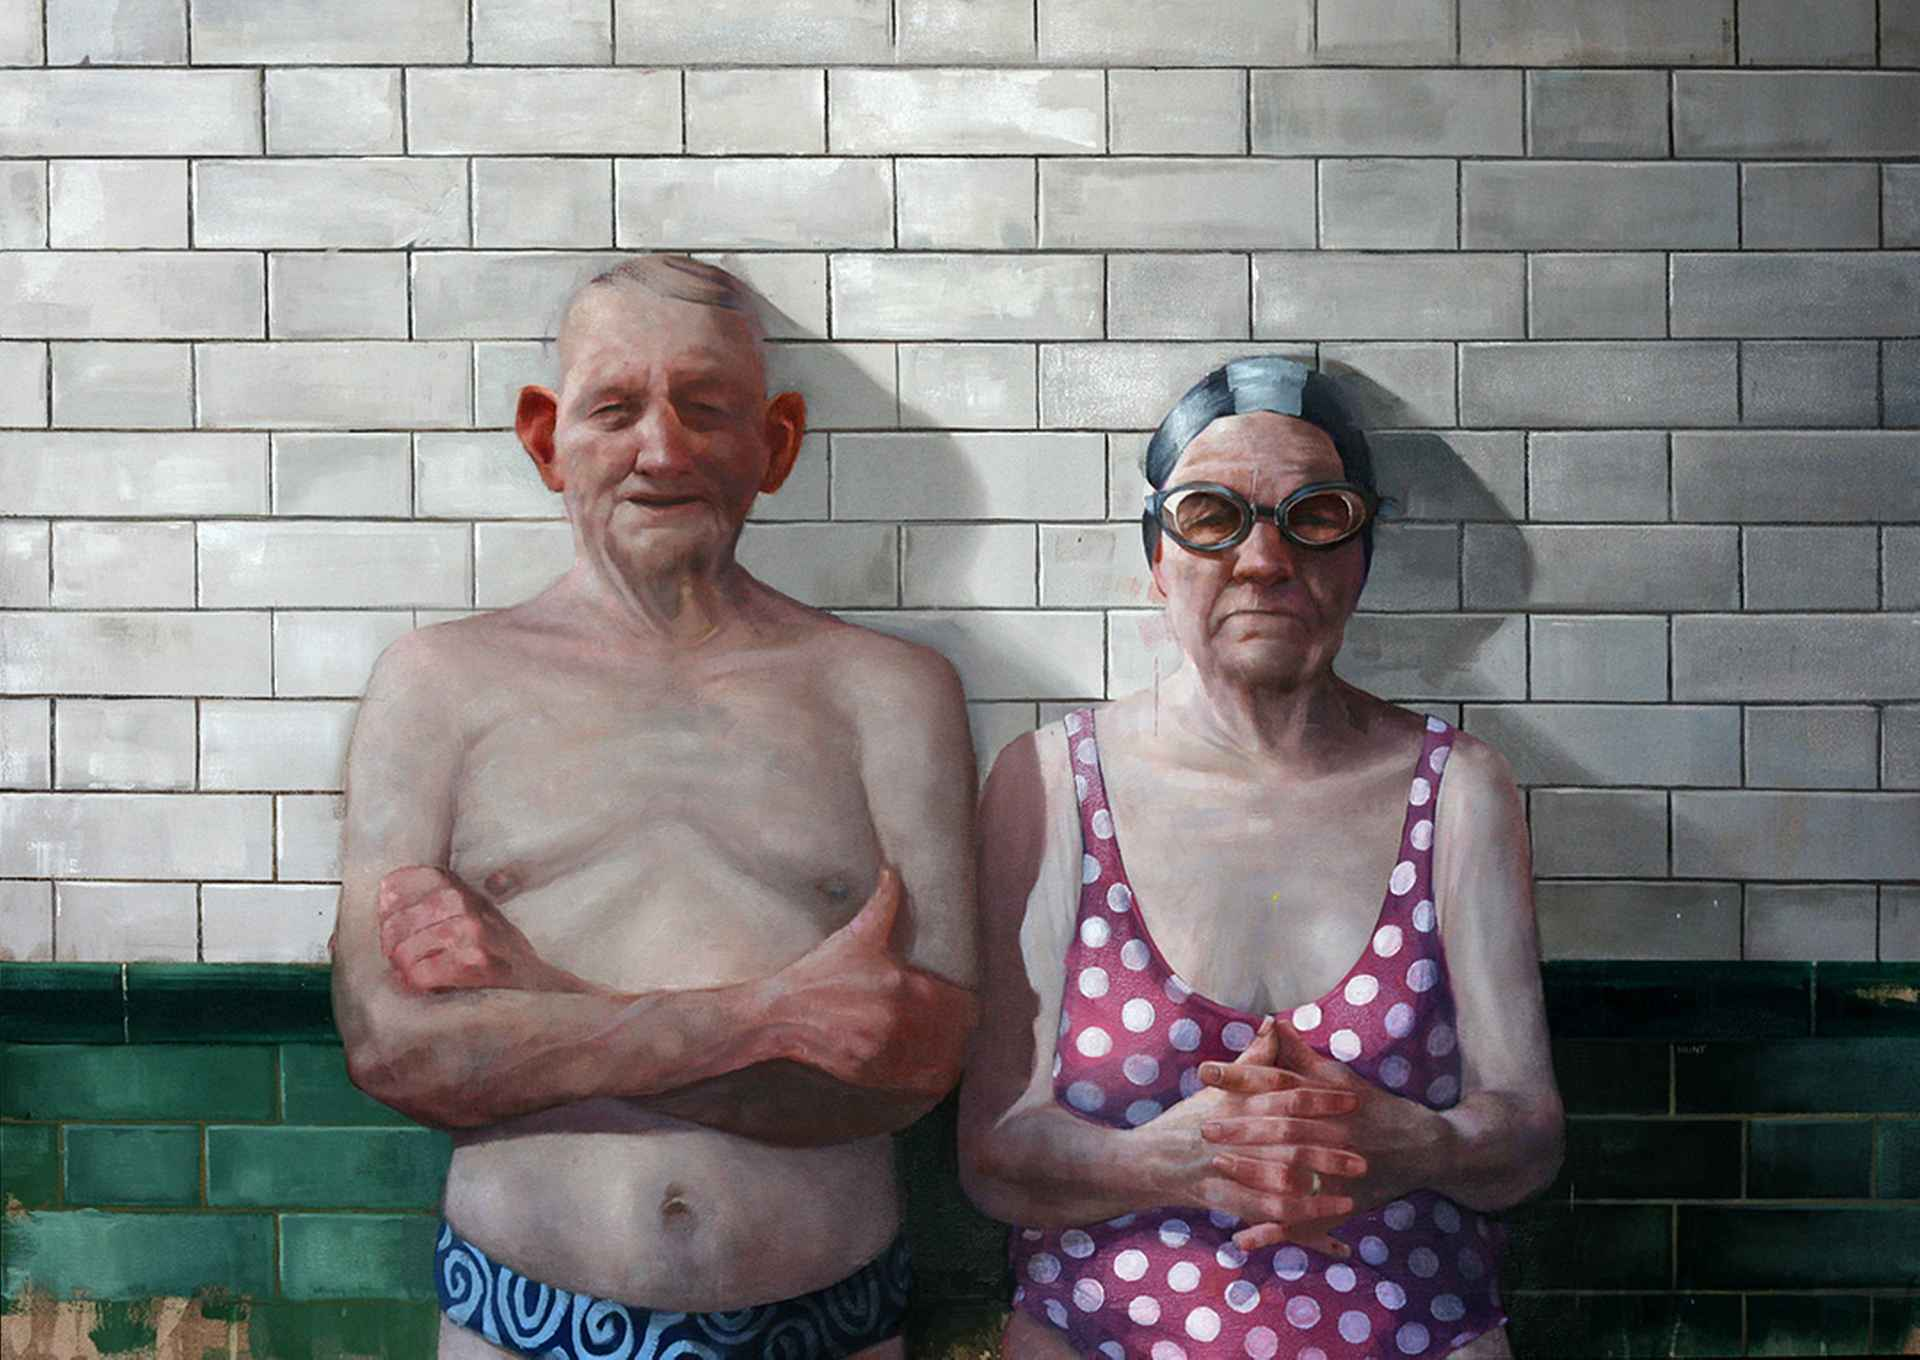 The Swimmers by Andrew Hunt